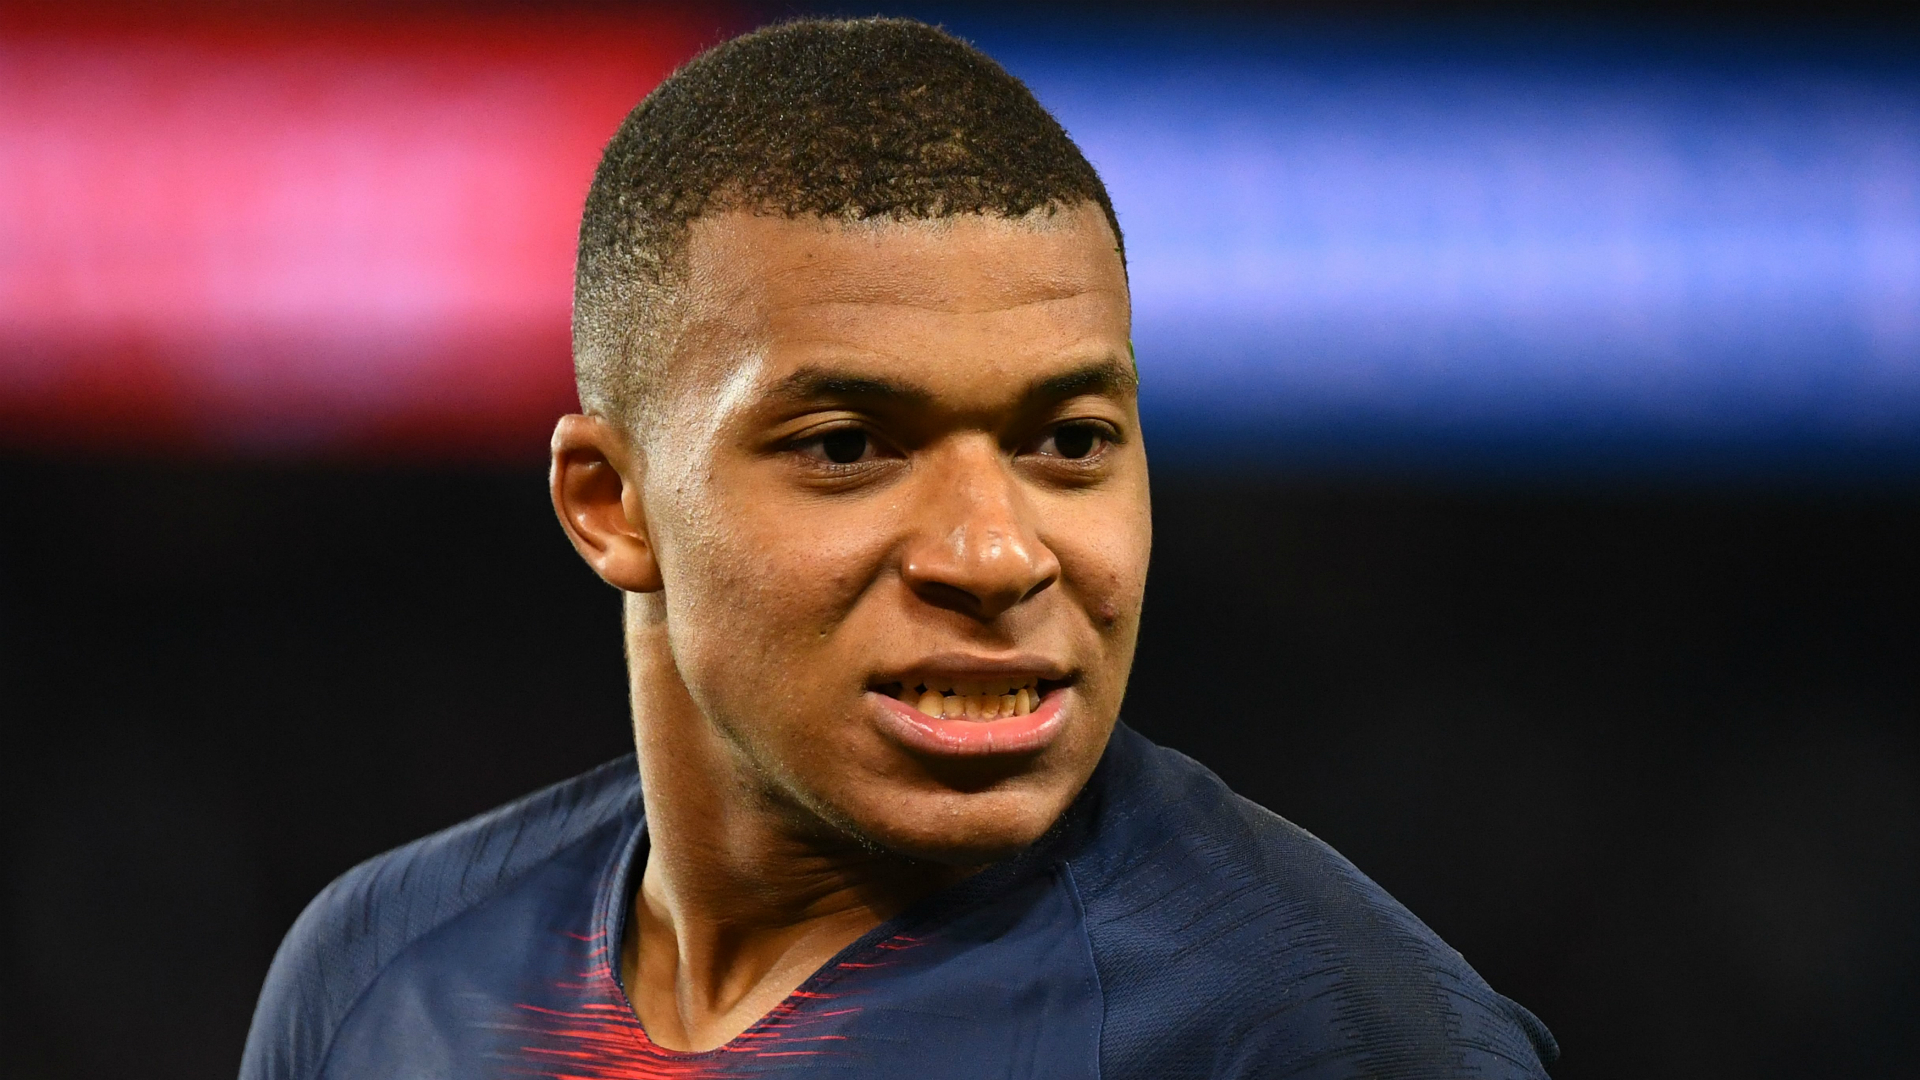 Mbappe could play at 2020 Olympics